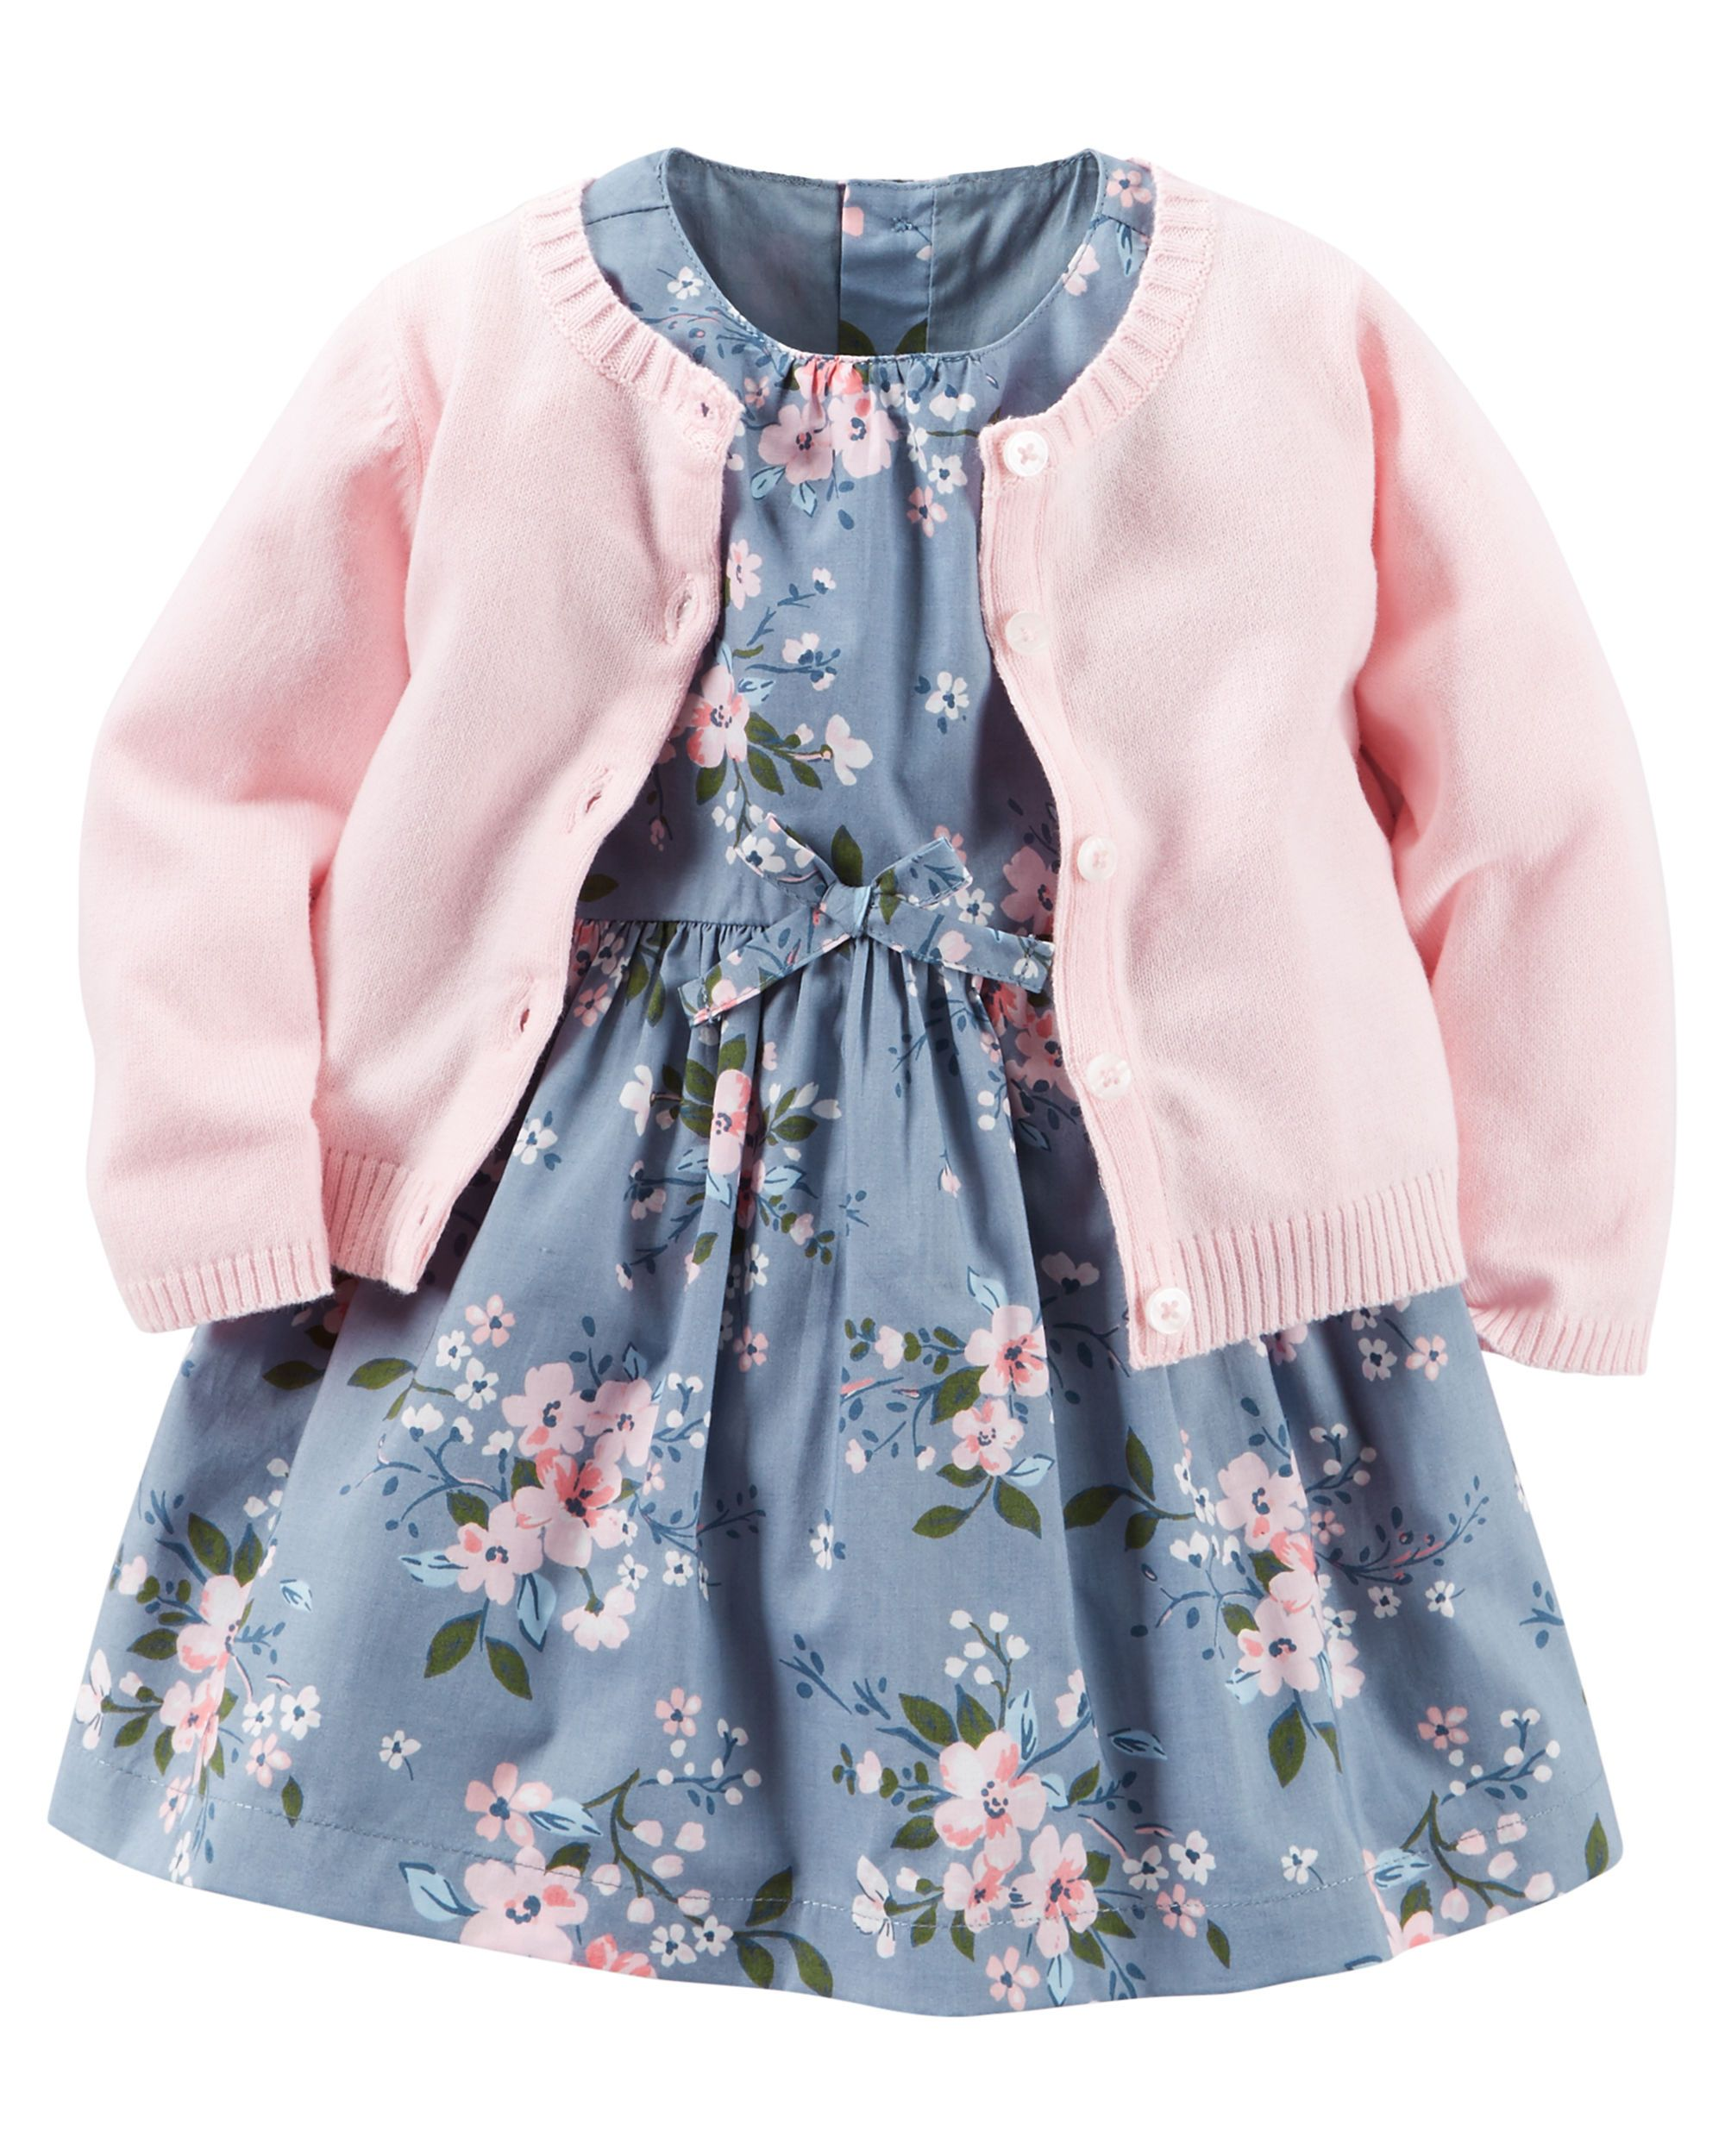 ac3df75c1 2-Piece Dress   Cardigan Set